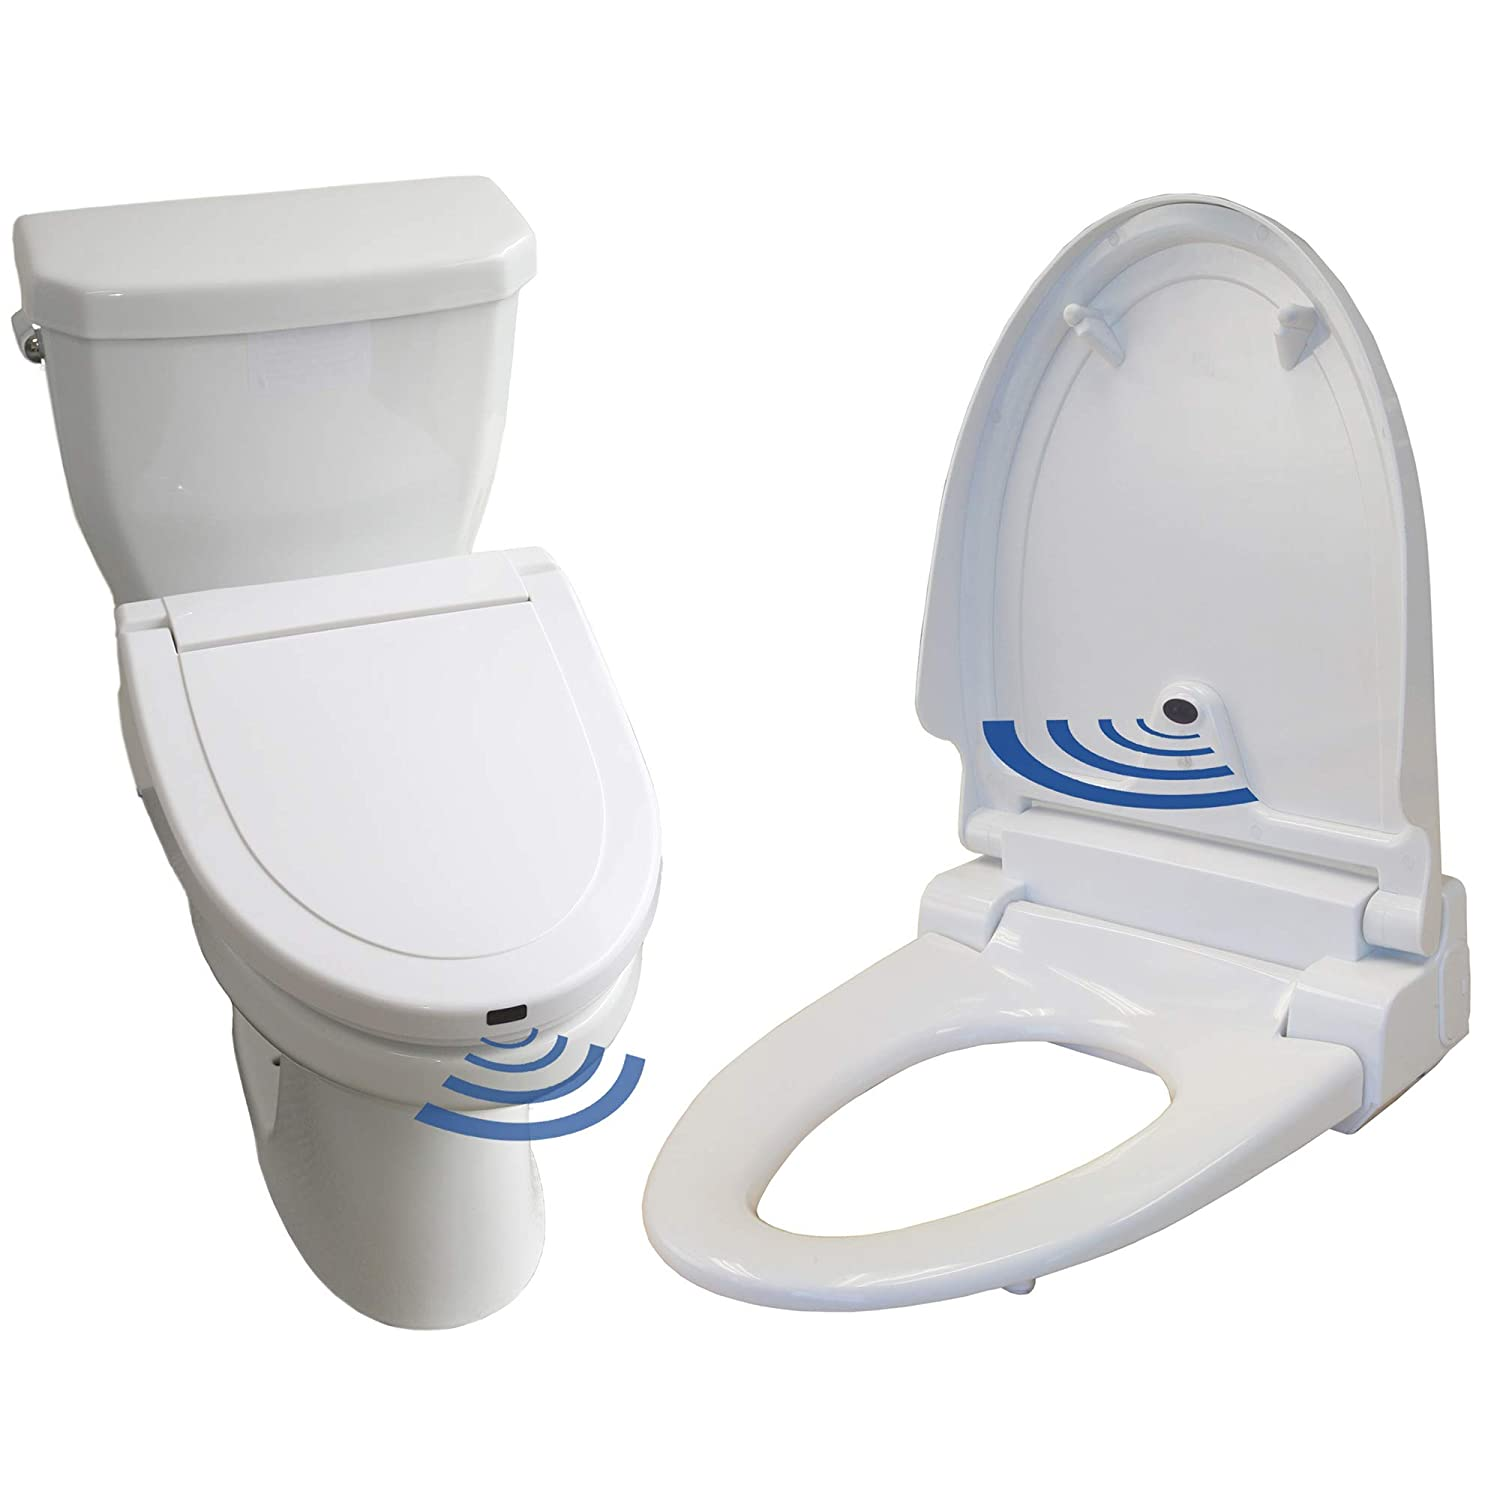 Tremendous Itouchless Touch Free Sensor Controlled Automatic Toilet Seat Elongated Model Off White Machost Co Dining Chair Design Ideas Machostcouk